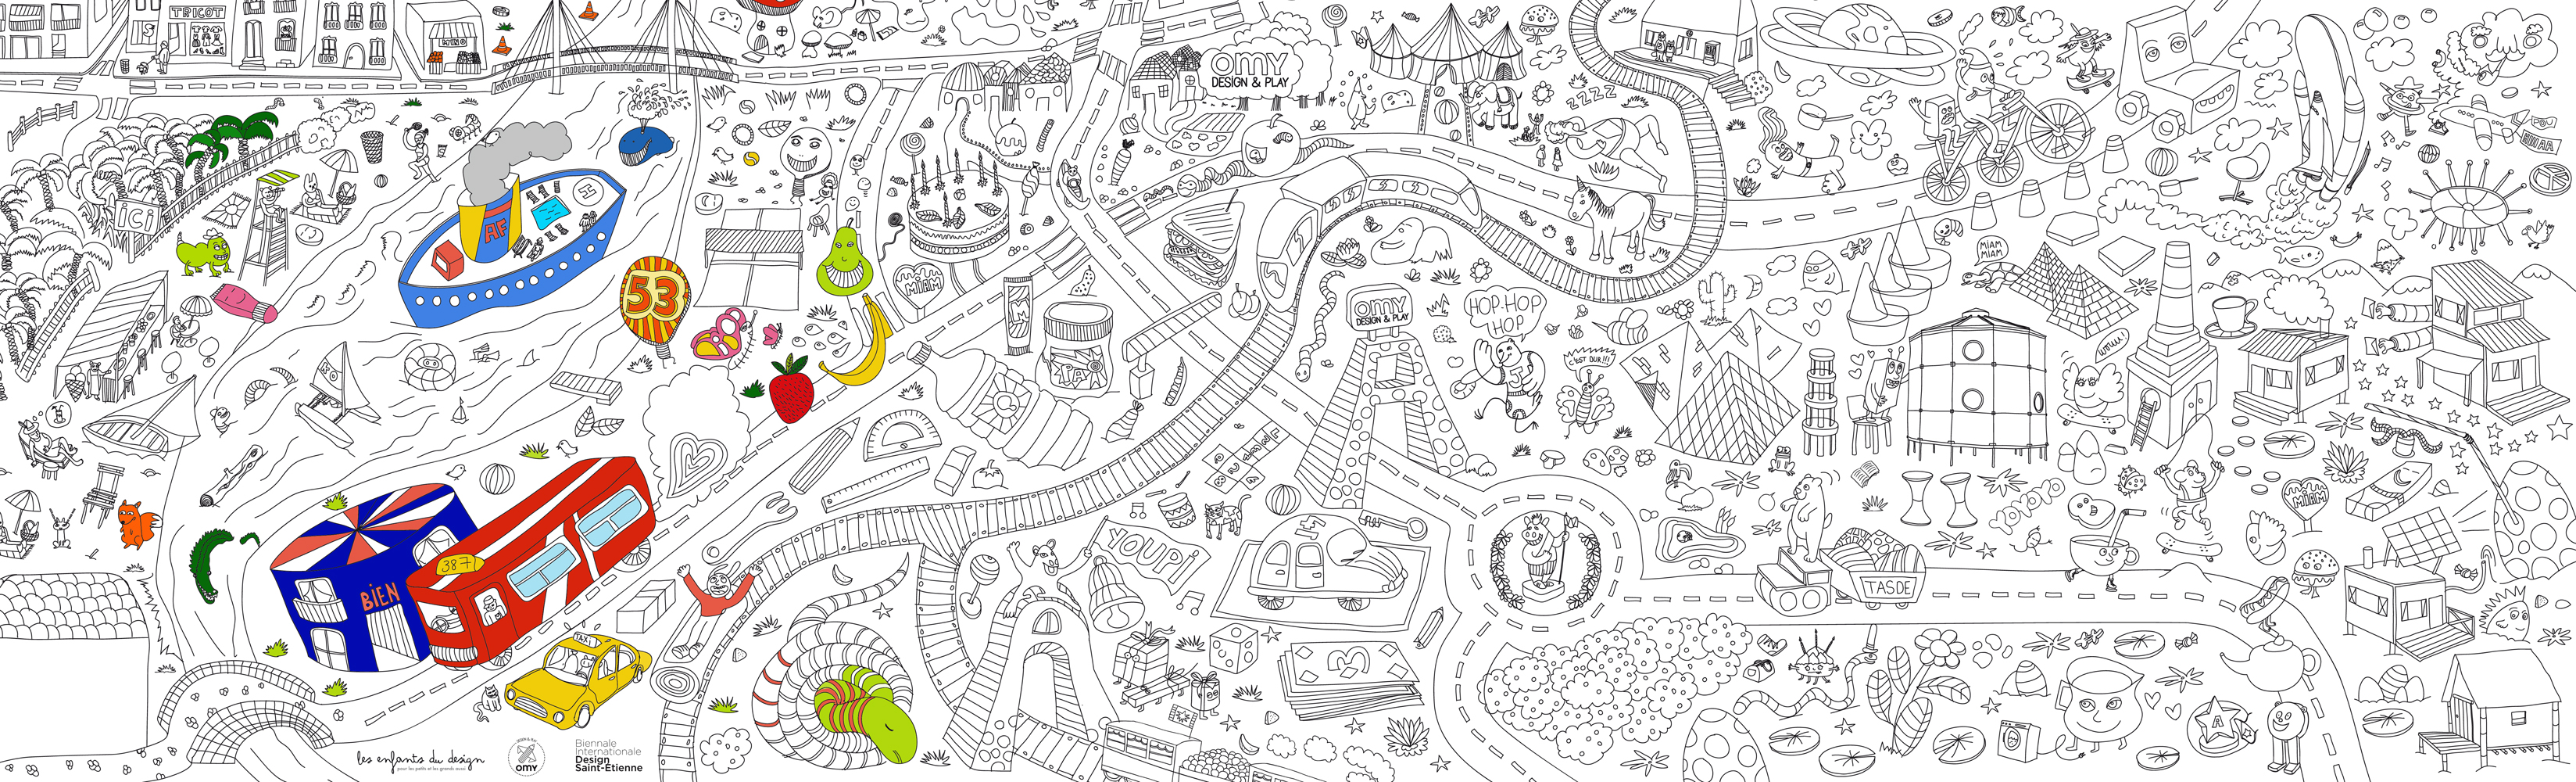 1000 images about coloriage geant on pinterest - Coloriage omy ...